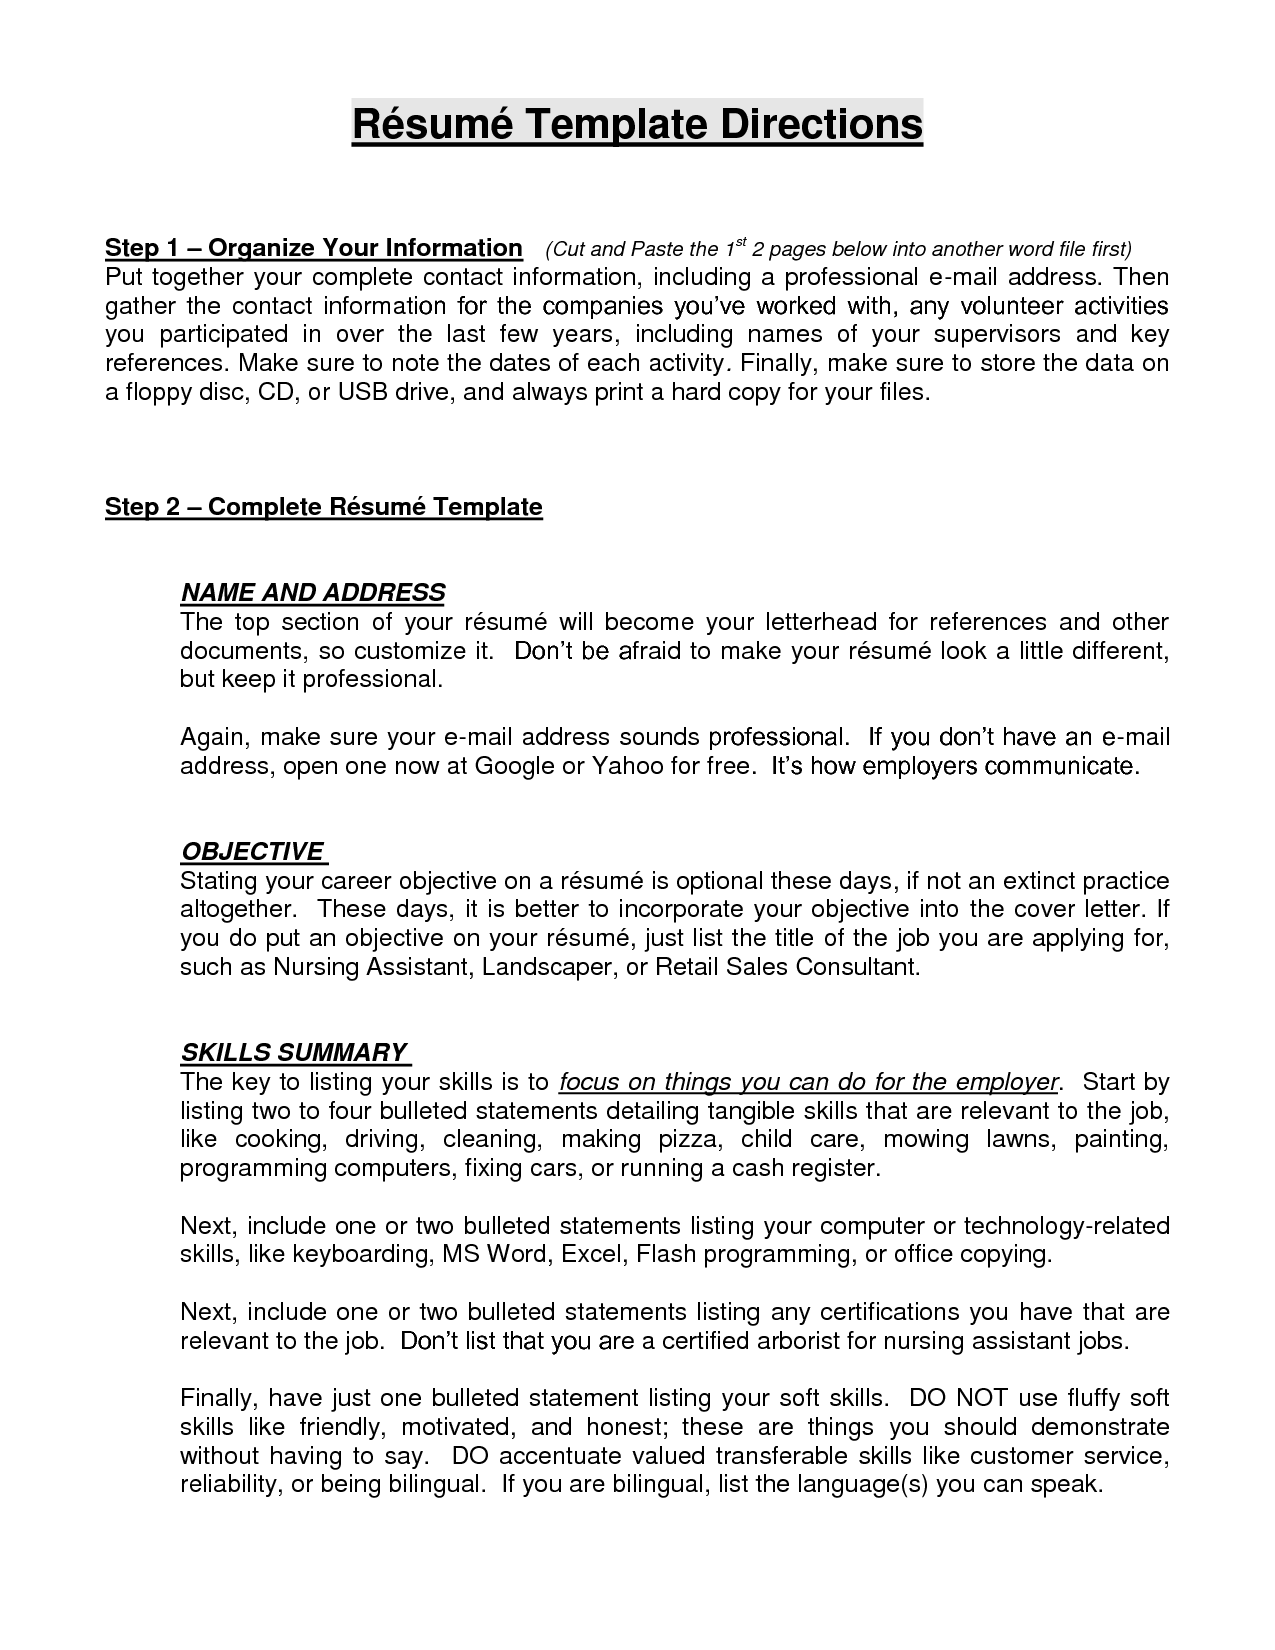 college application resume objective statement 10 sample resume objective statements 12142